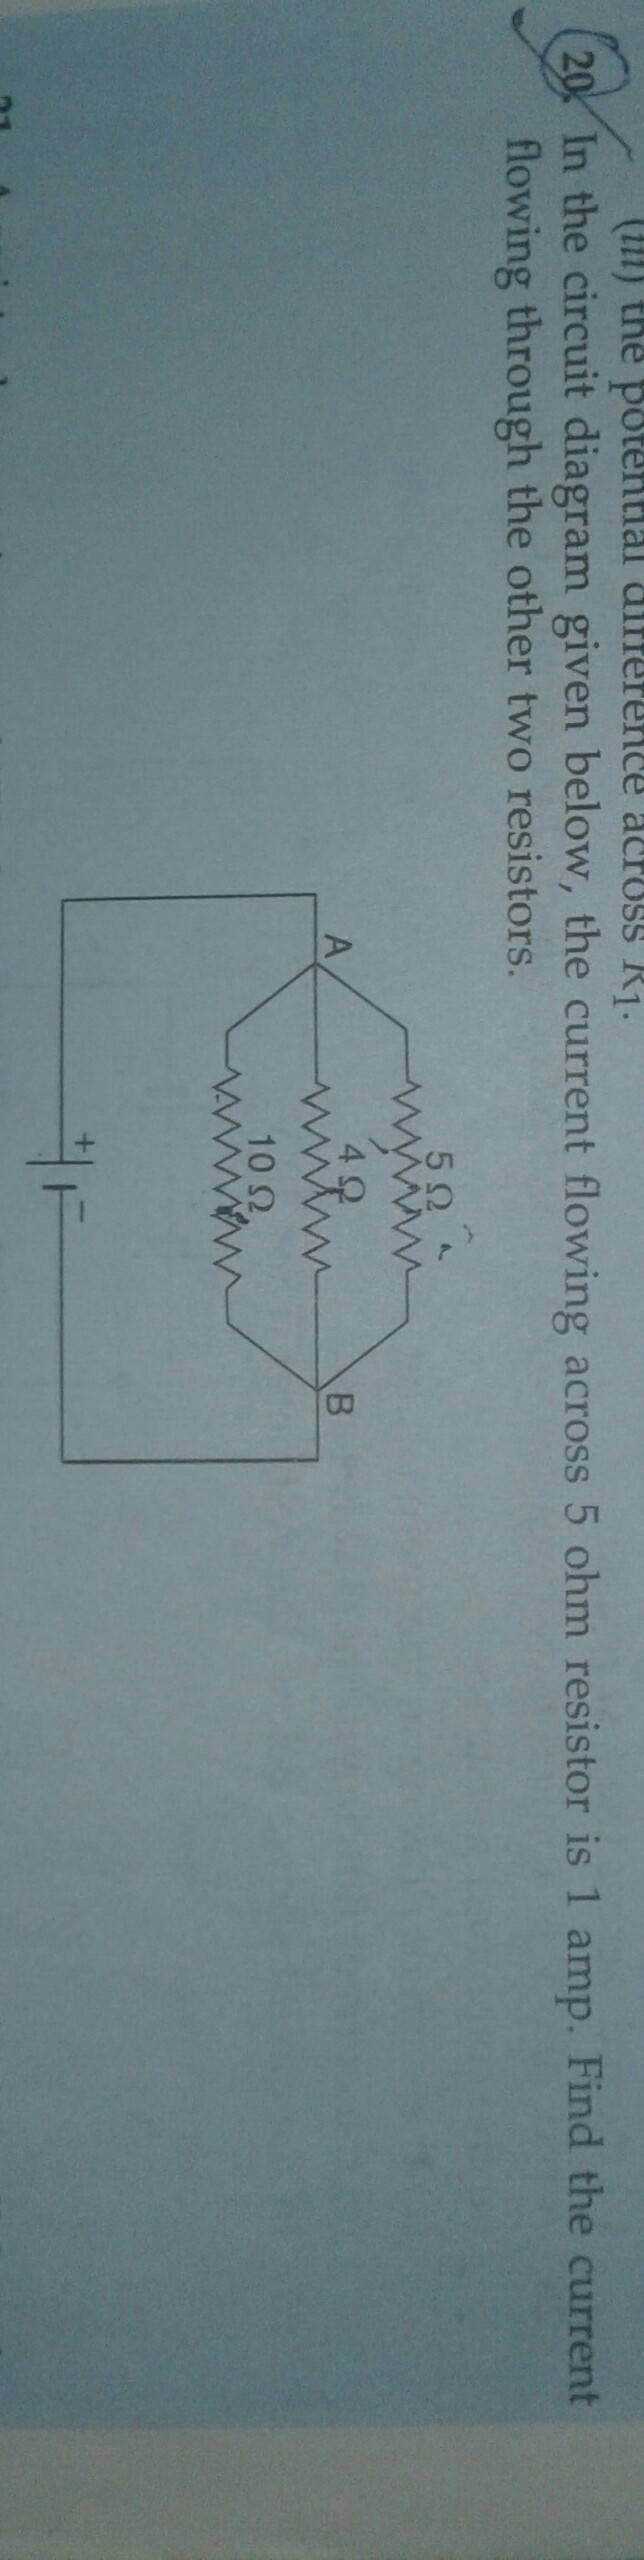 Find Thr Current Flowing Through The Other Two Resistors Brainly In